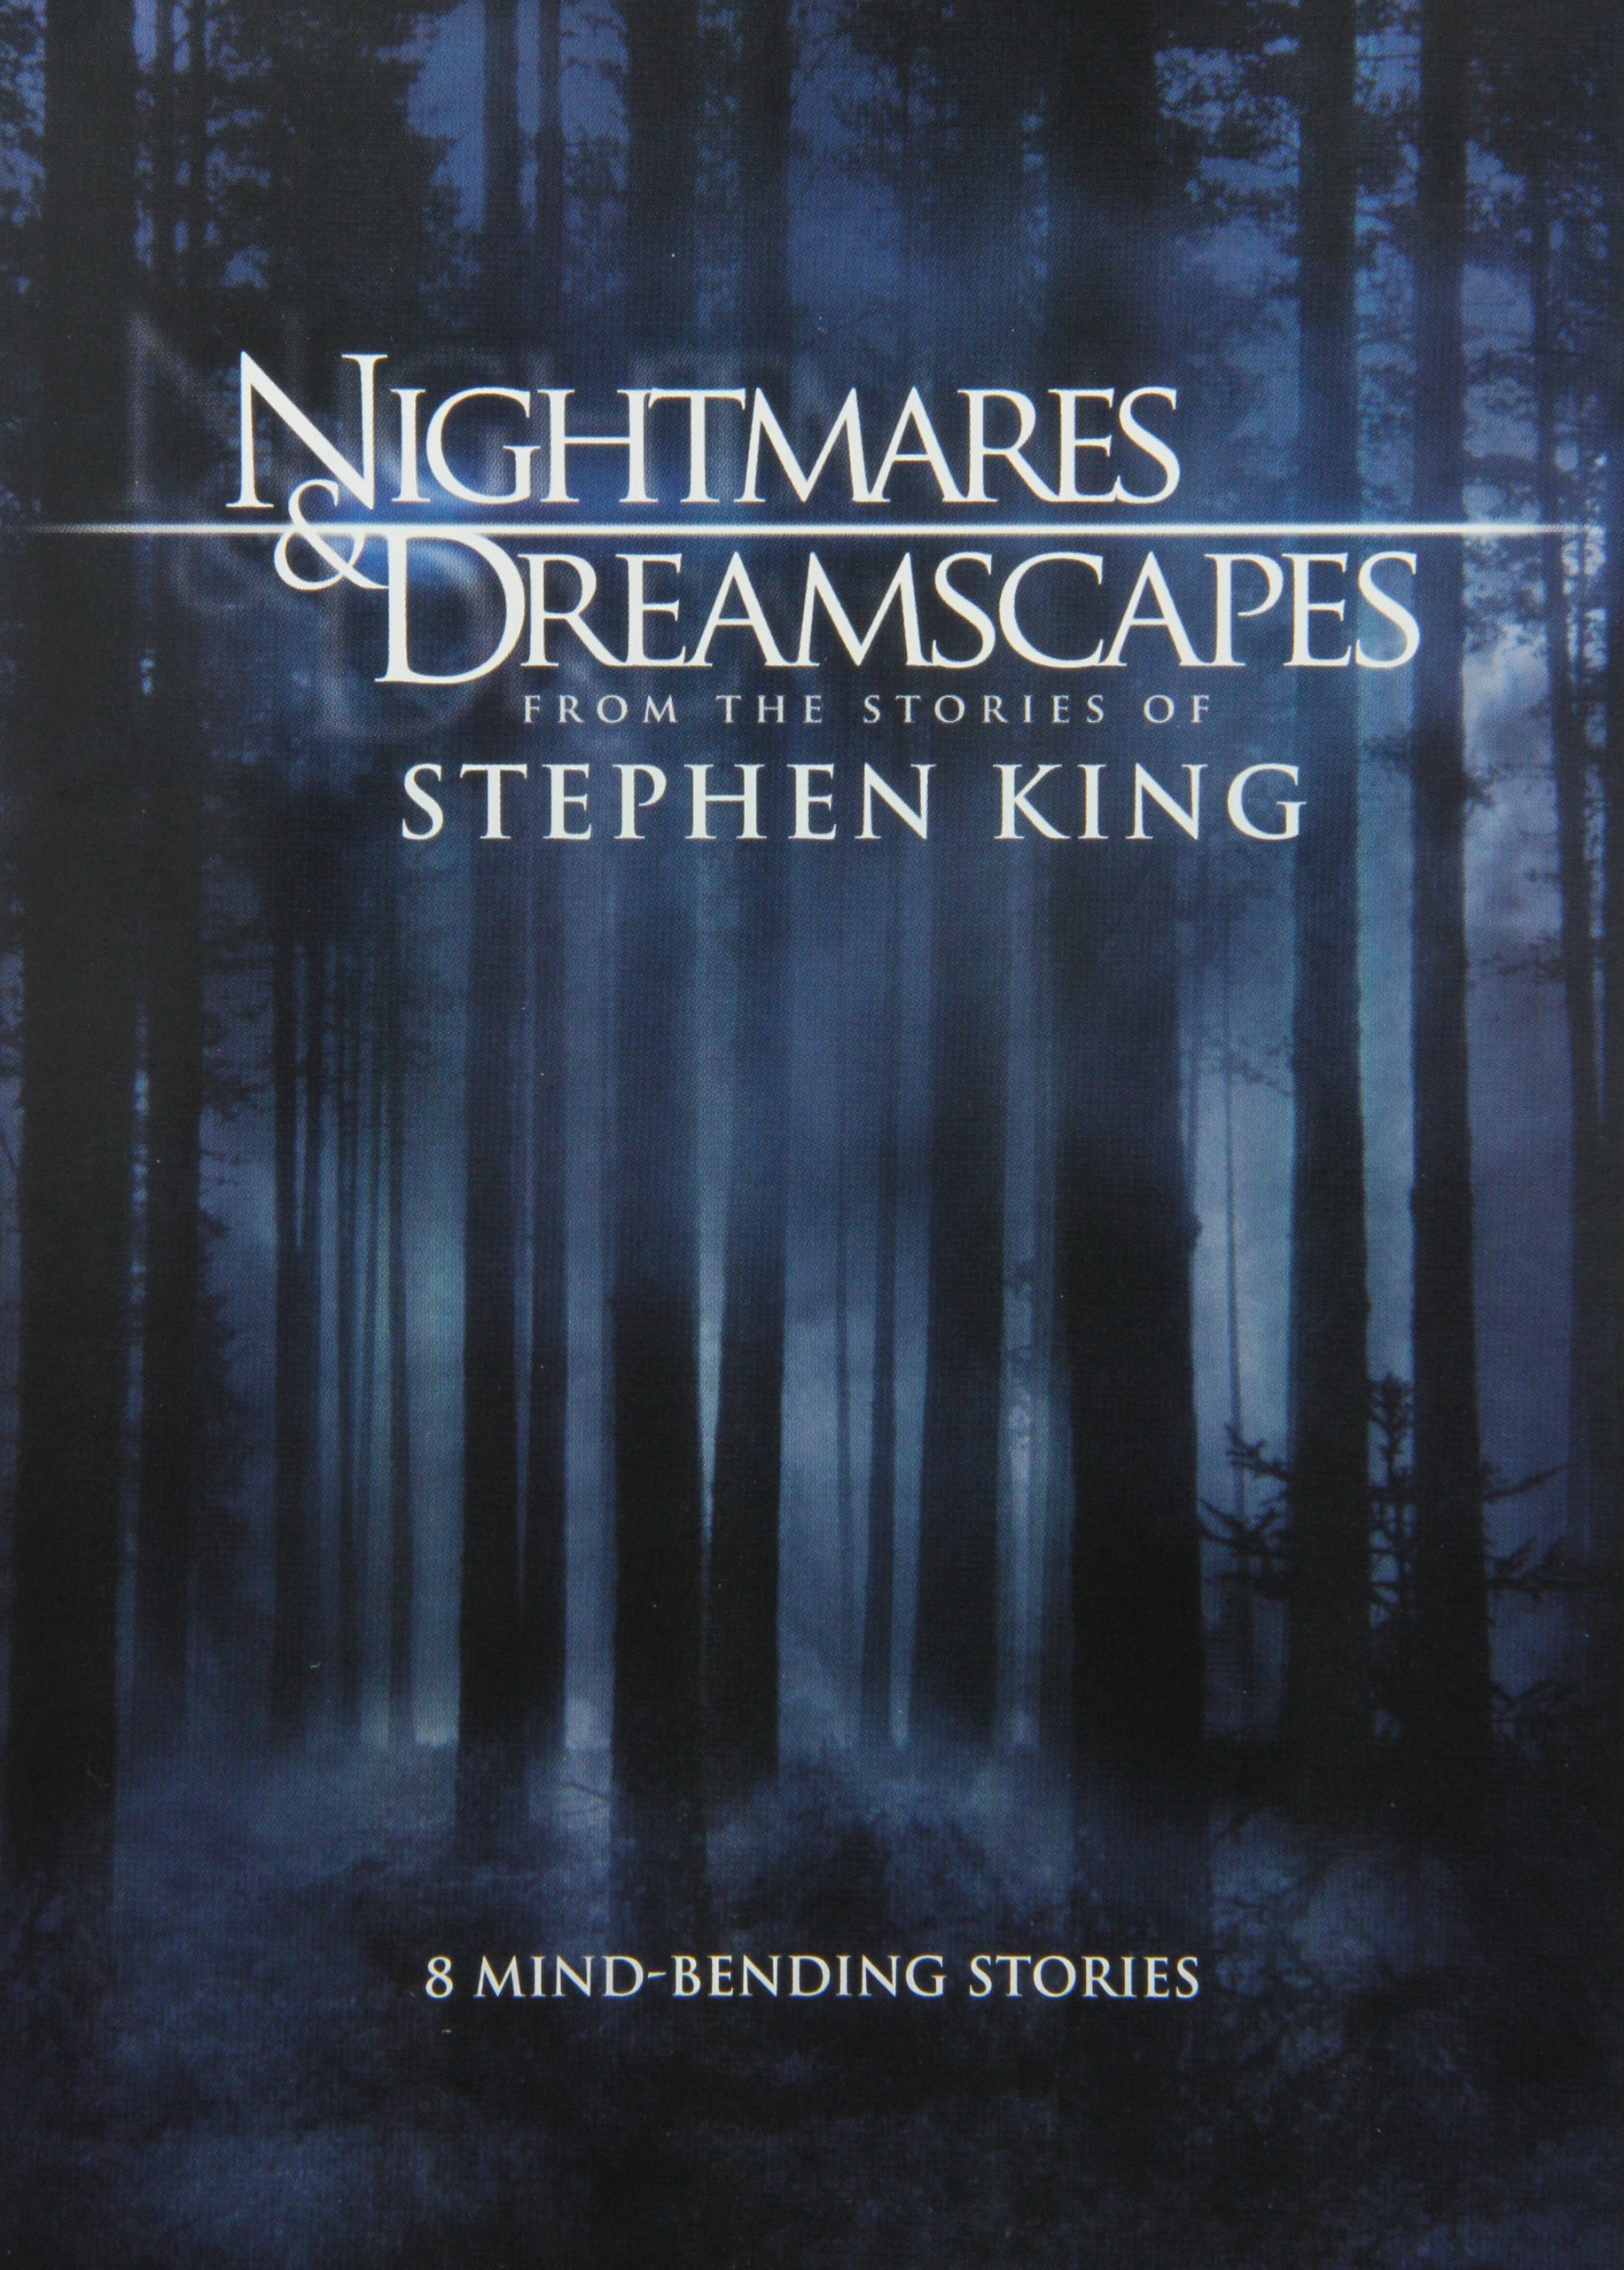 Nightmares & Dreamscapes - From the Stories of Stephen King